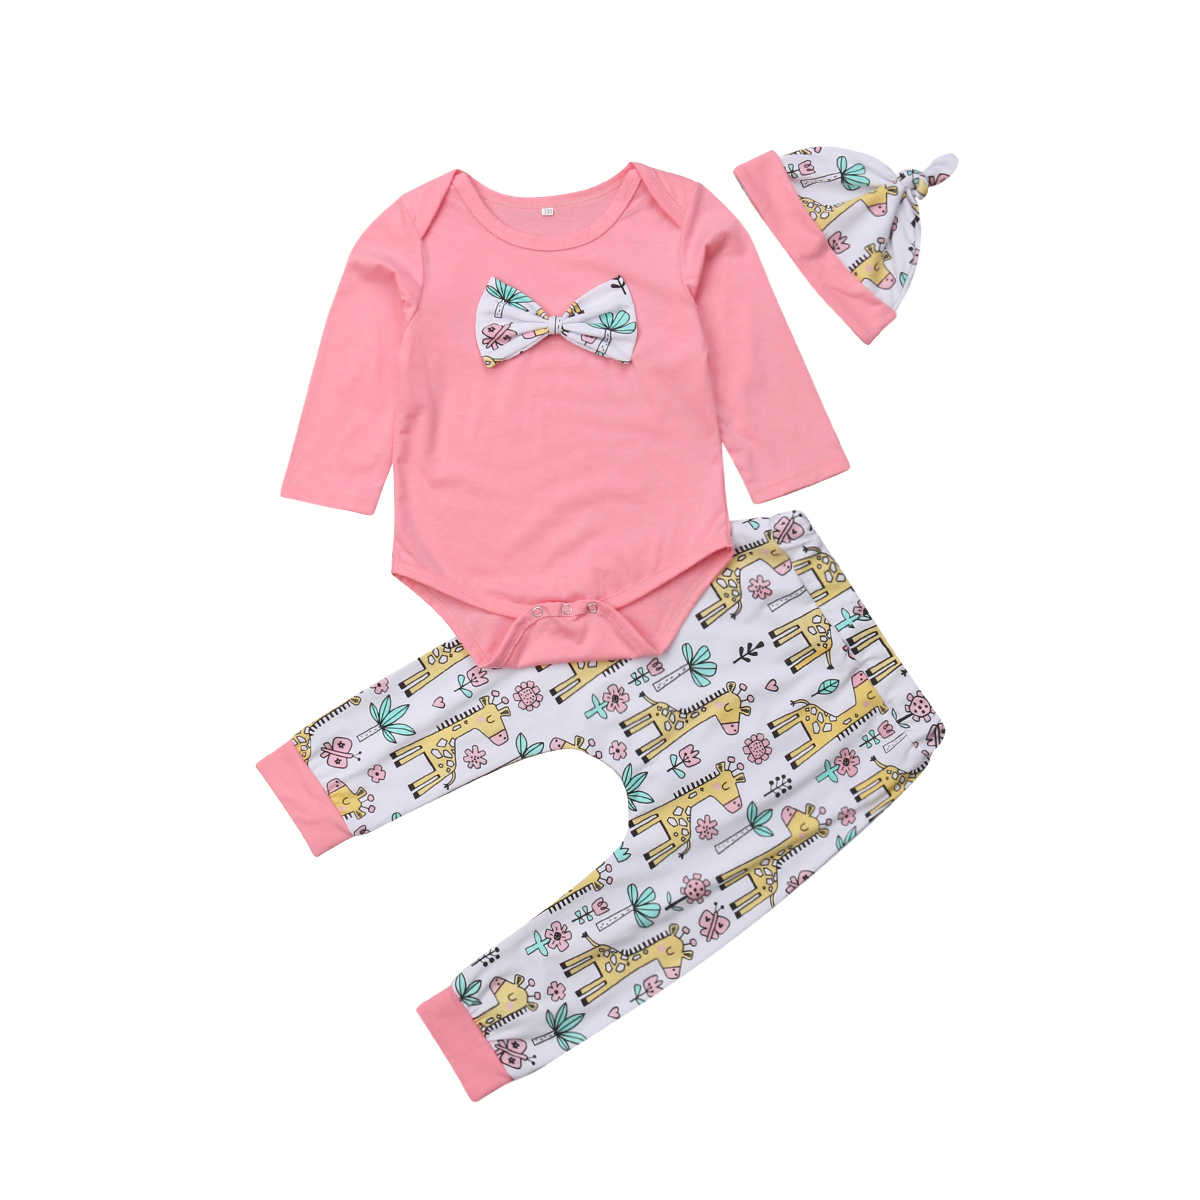 c30f322d313 Detail Feedback Questions about 3Pcs Newborn Baby Girl Clothes ...